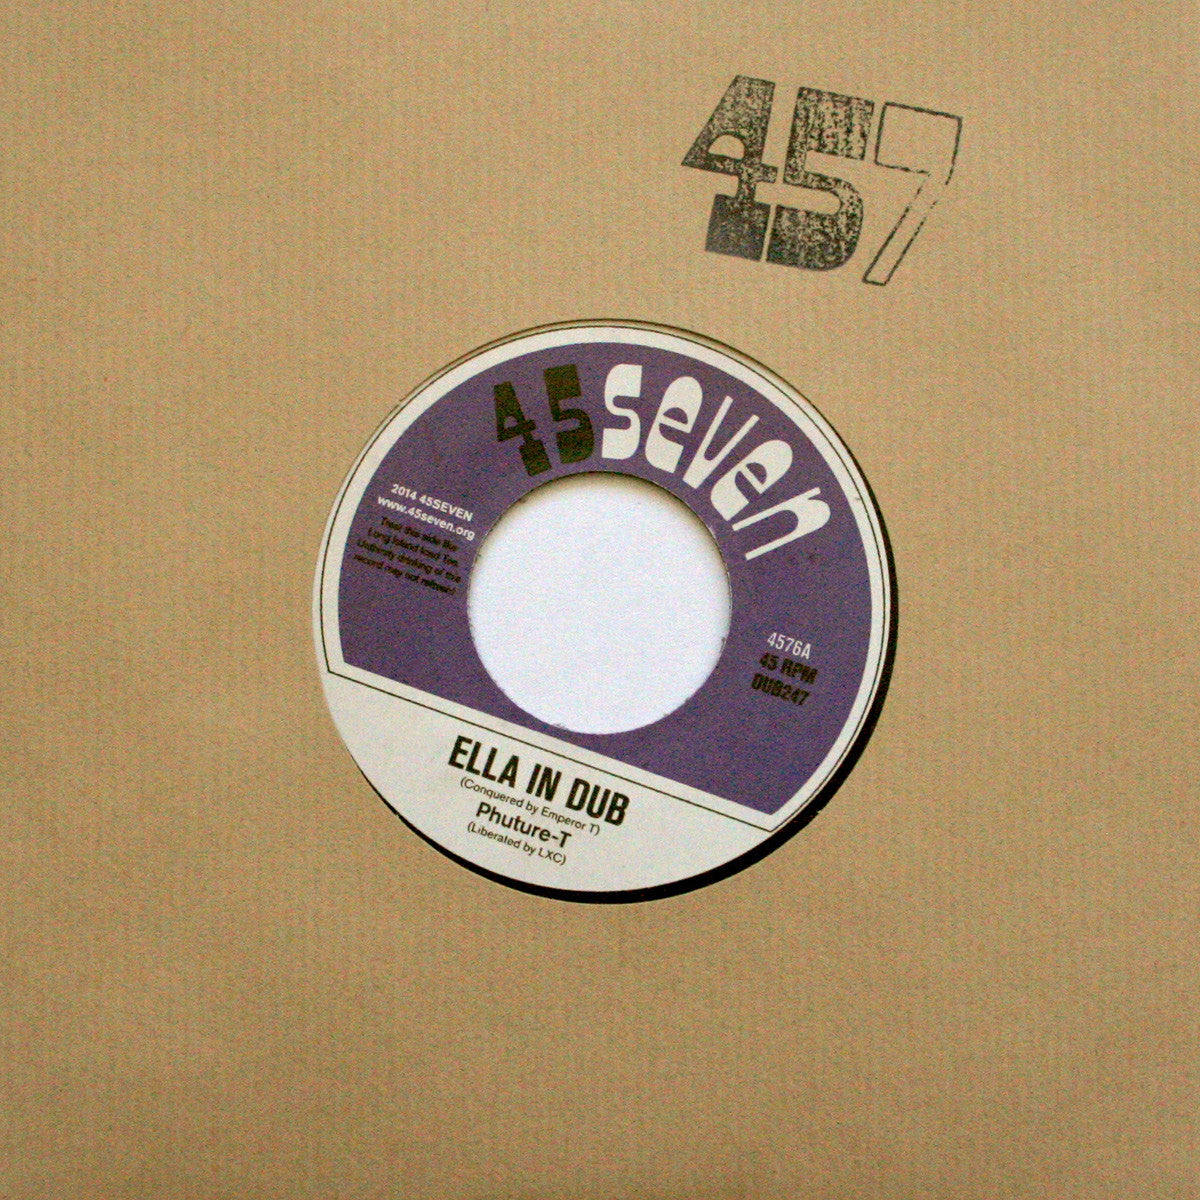 Phuture-T - Ella In Dub / Dubber Ella - Unearthed Sounds